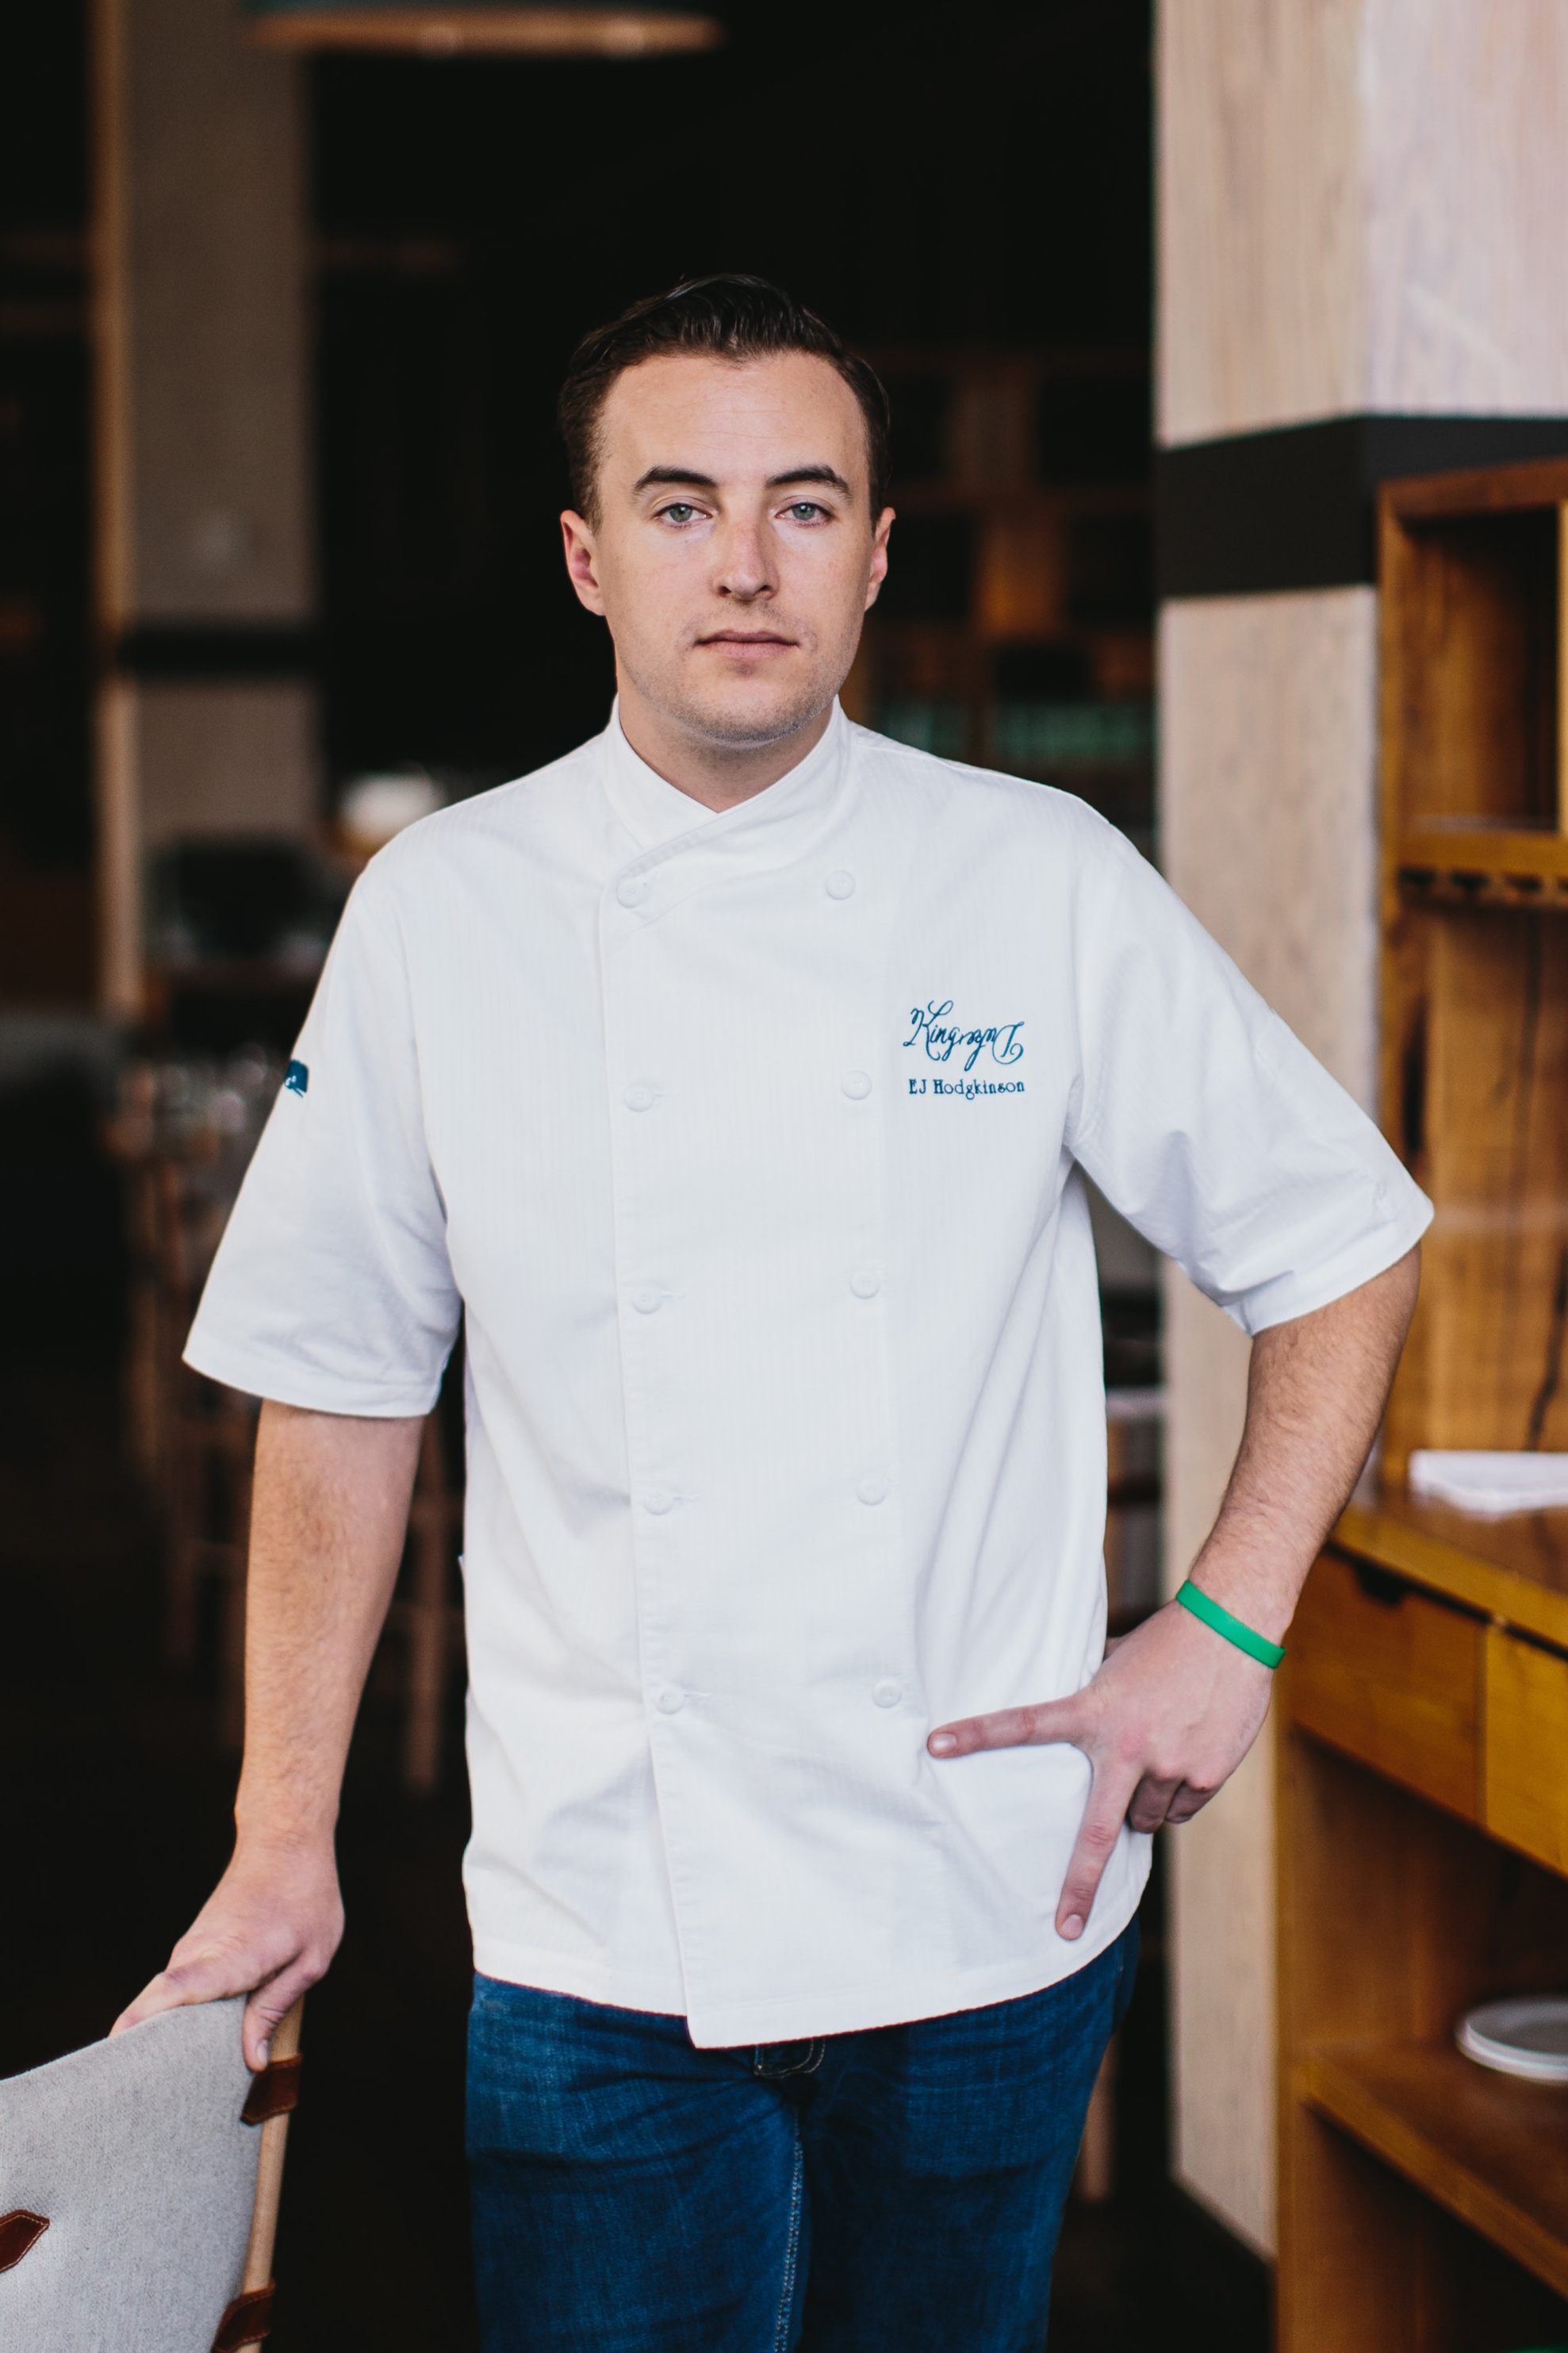 Executive Chef, King + Duke  California-native EJ Hodgkinson combines sustainable, organic advocacy and industry knowledge with King + Duke's signature bent toward open-fire cooking. With age-old technique and a 24-foot open-fire hearth, Hodgkinson injects the over-arching theme of responsible butchering and direct-heat cooking into the juicy, smoky menu at King + Duke, and further propels the restaurant into the limelight of Atlanta's food scene. Under his leadership, the Atlantan and other notable publications have named King + Duke one of the top restaurants in Atlanta.